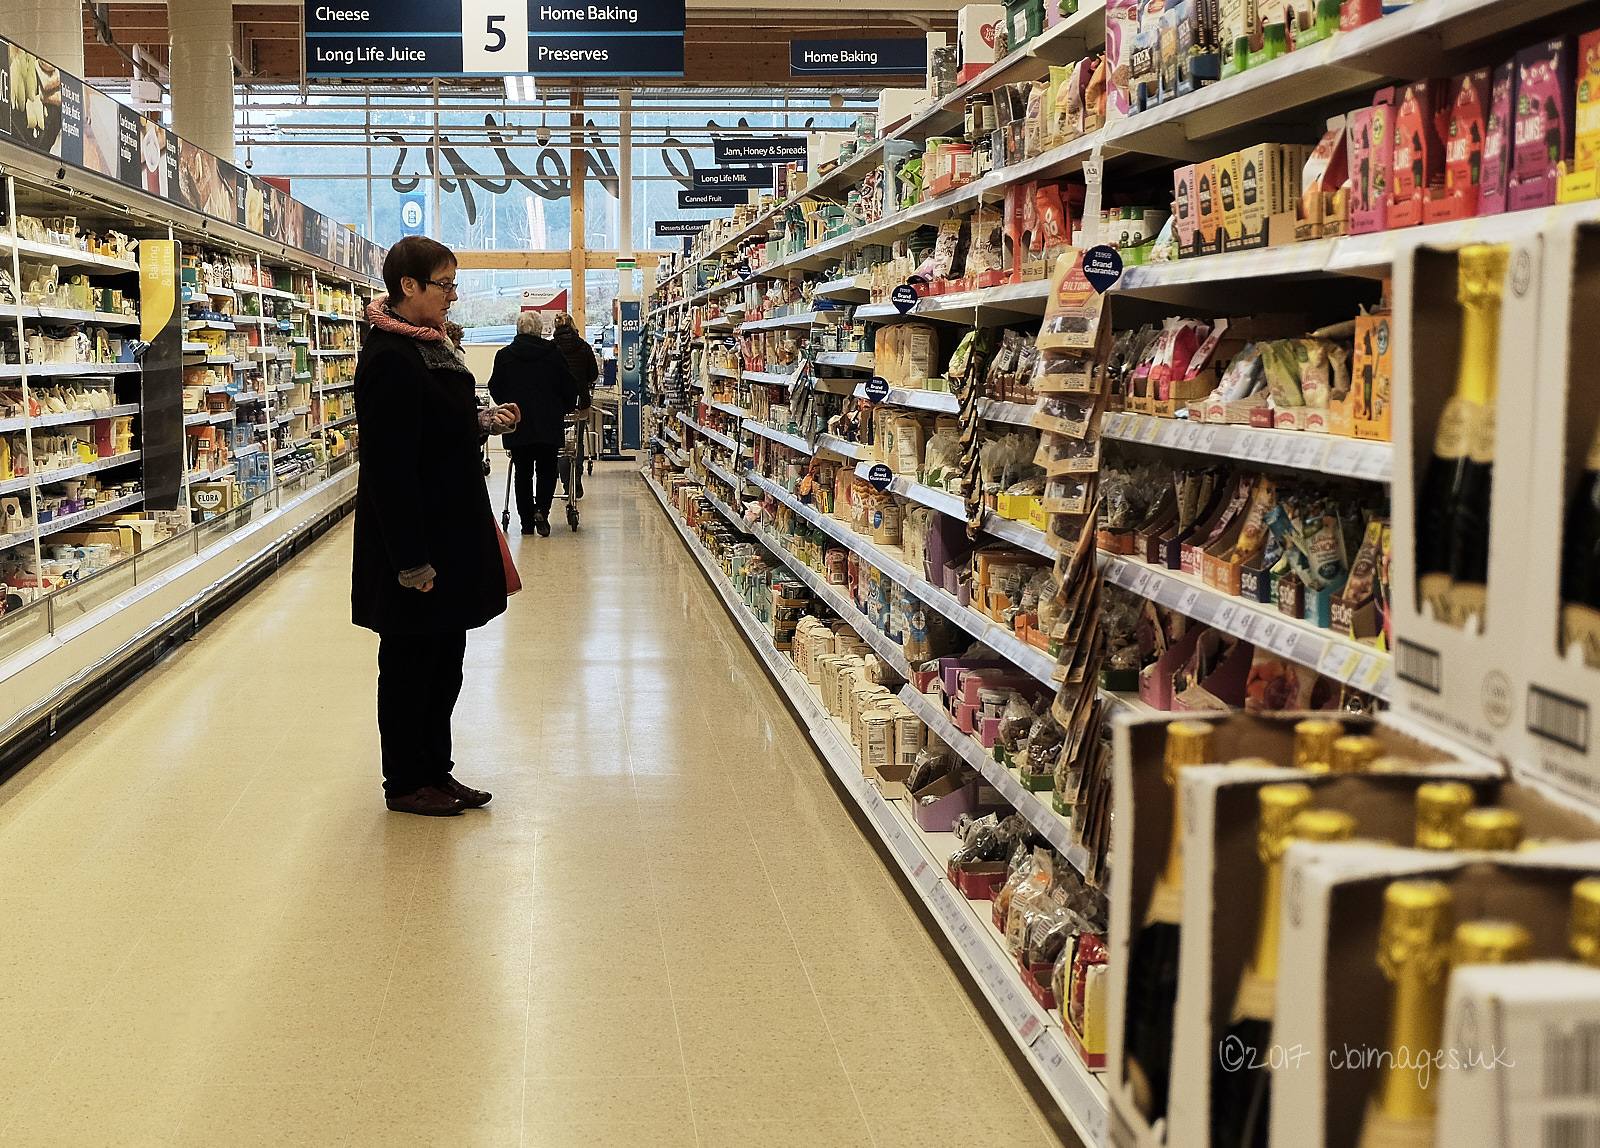 Person in a supermarket aisle